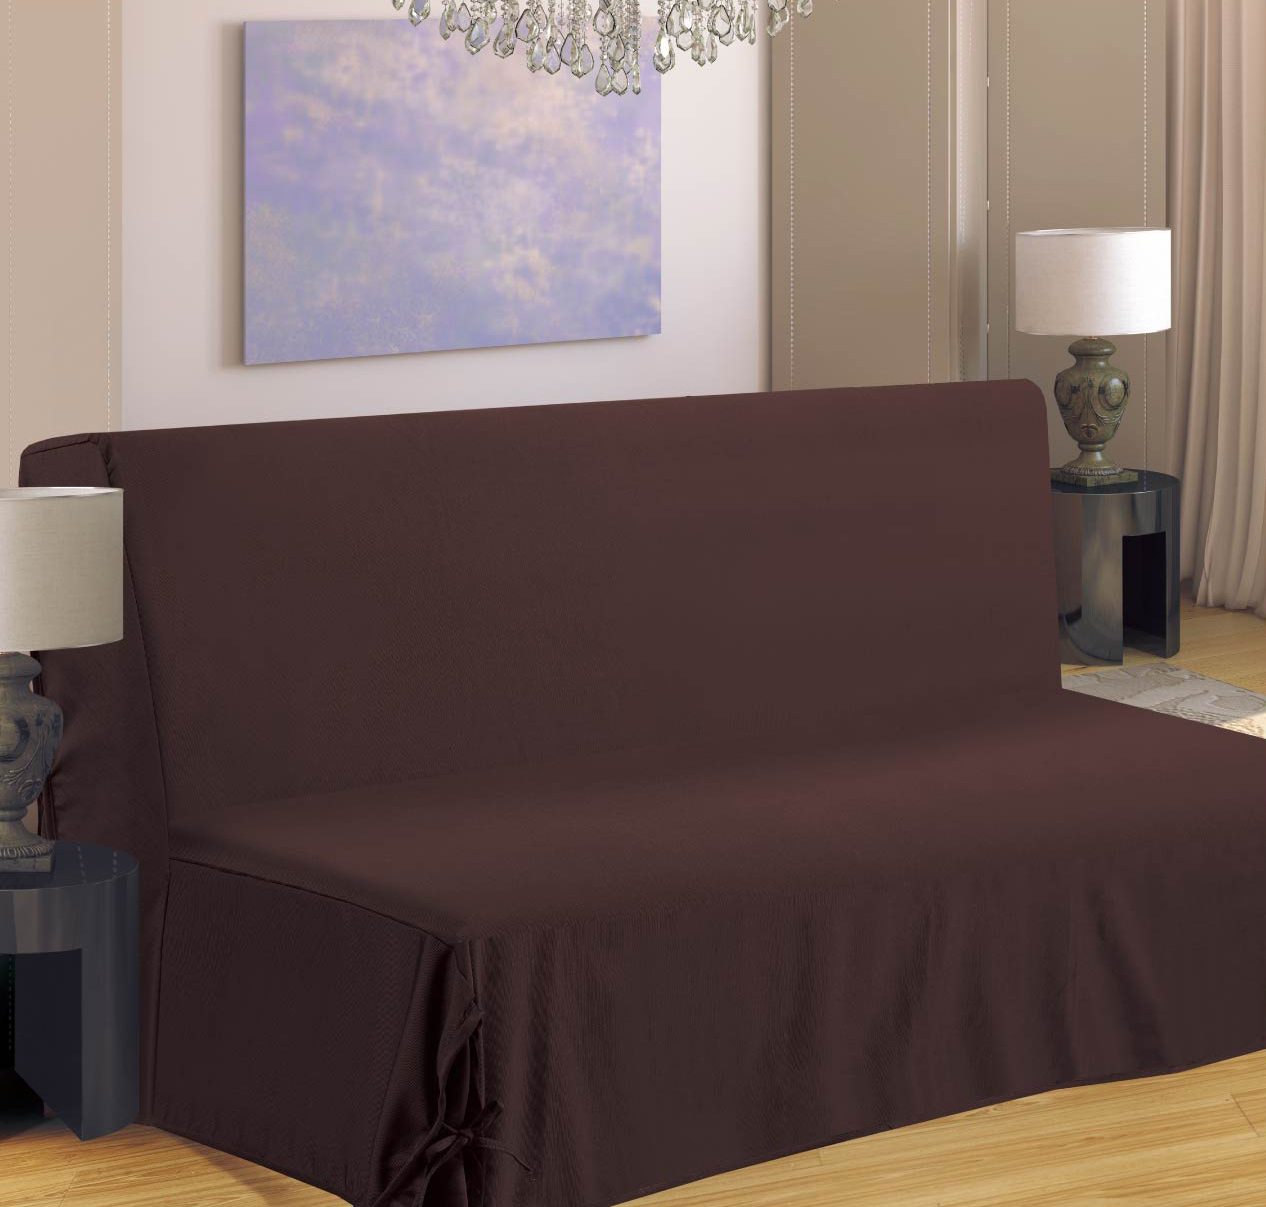 housse de canap pour bz chocolat noir bordeaux beige taupe gris violet. Black Bedroom Furniture Sets. Home Design Ideas